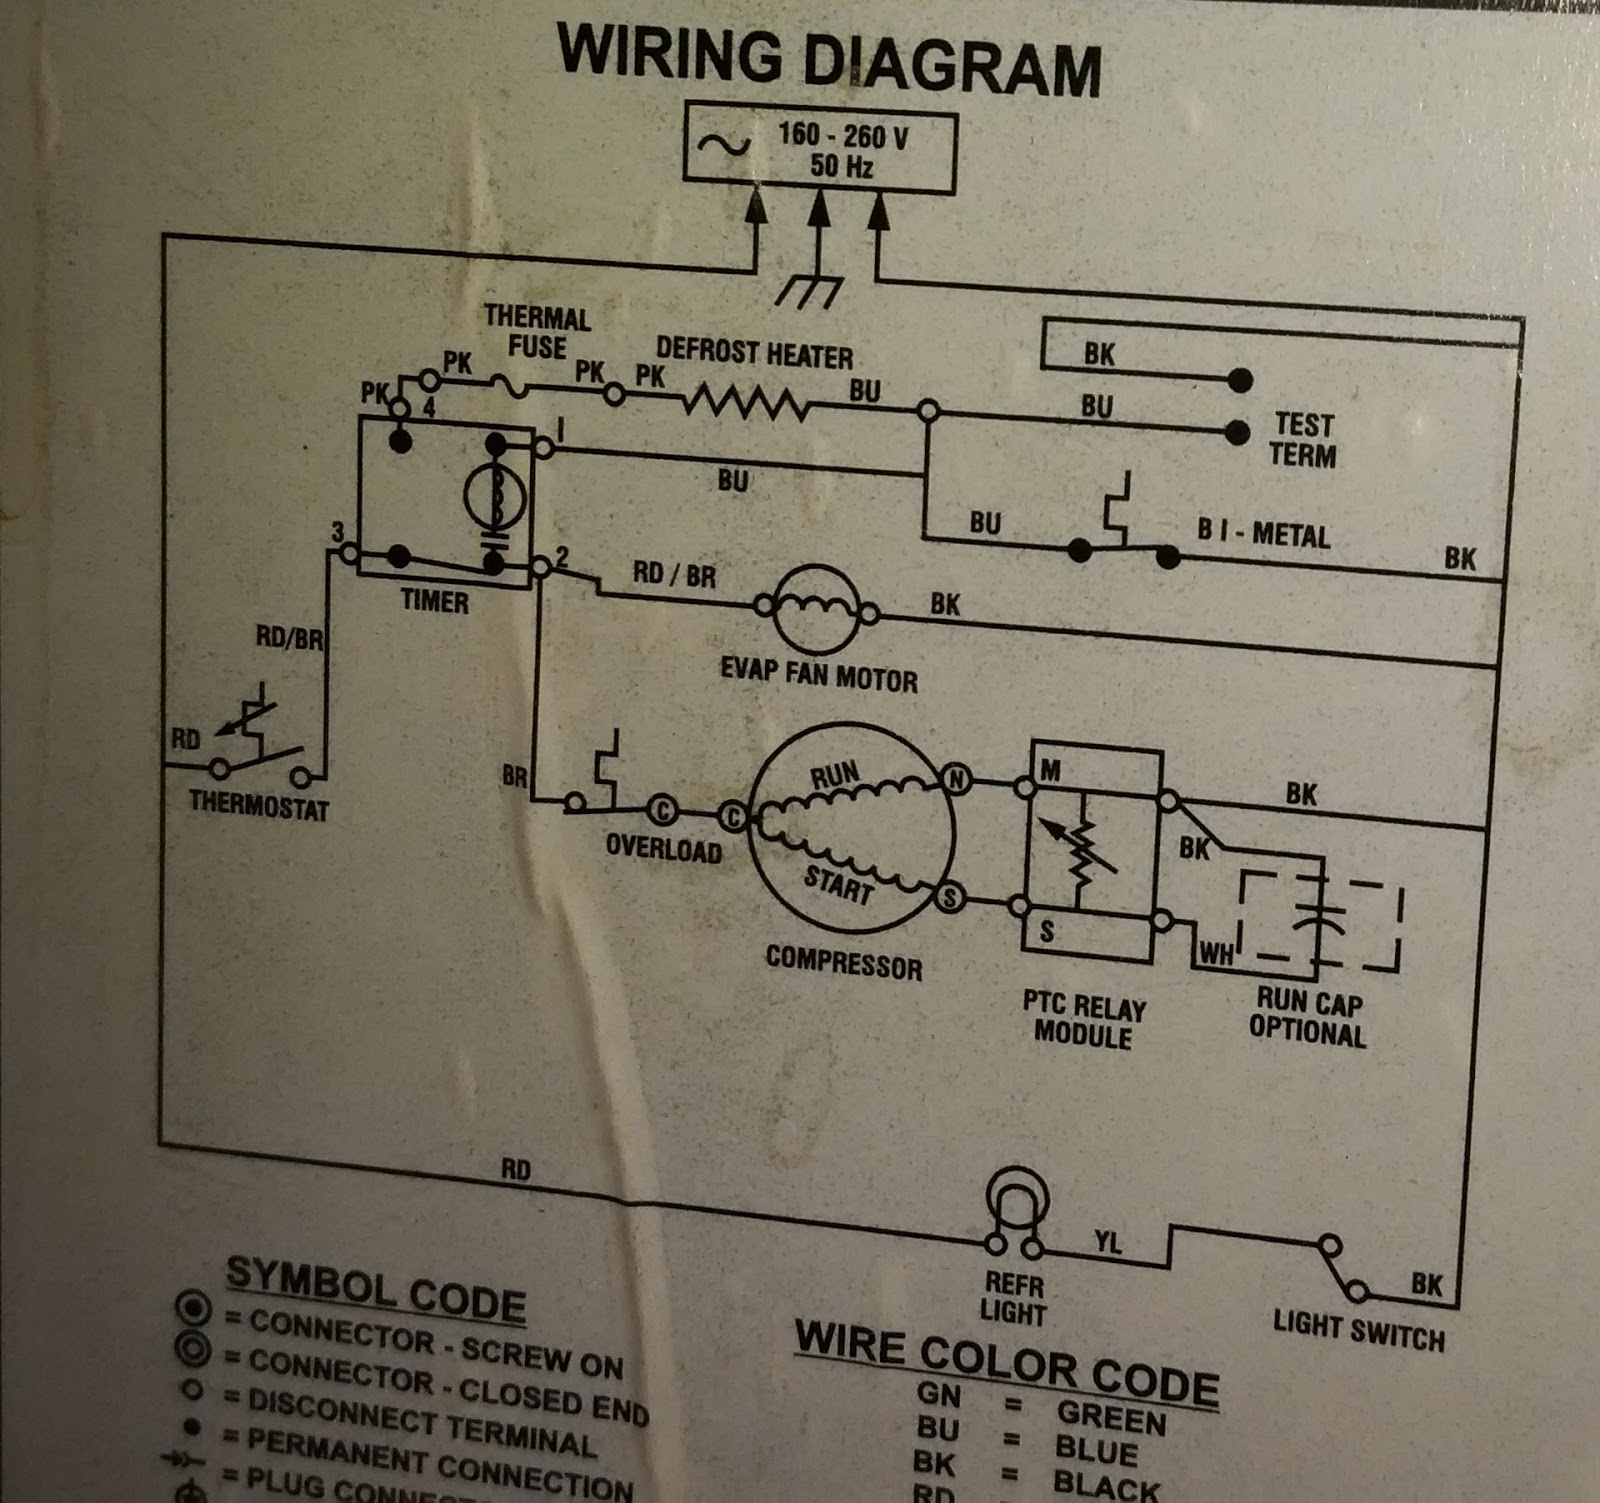 wiring diagram of double door refrigerator